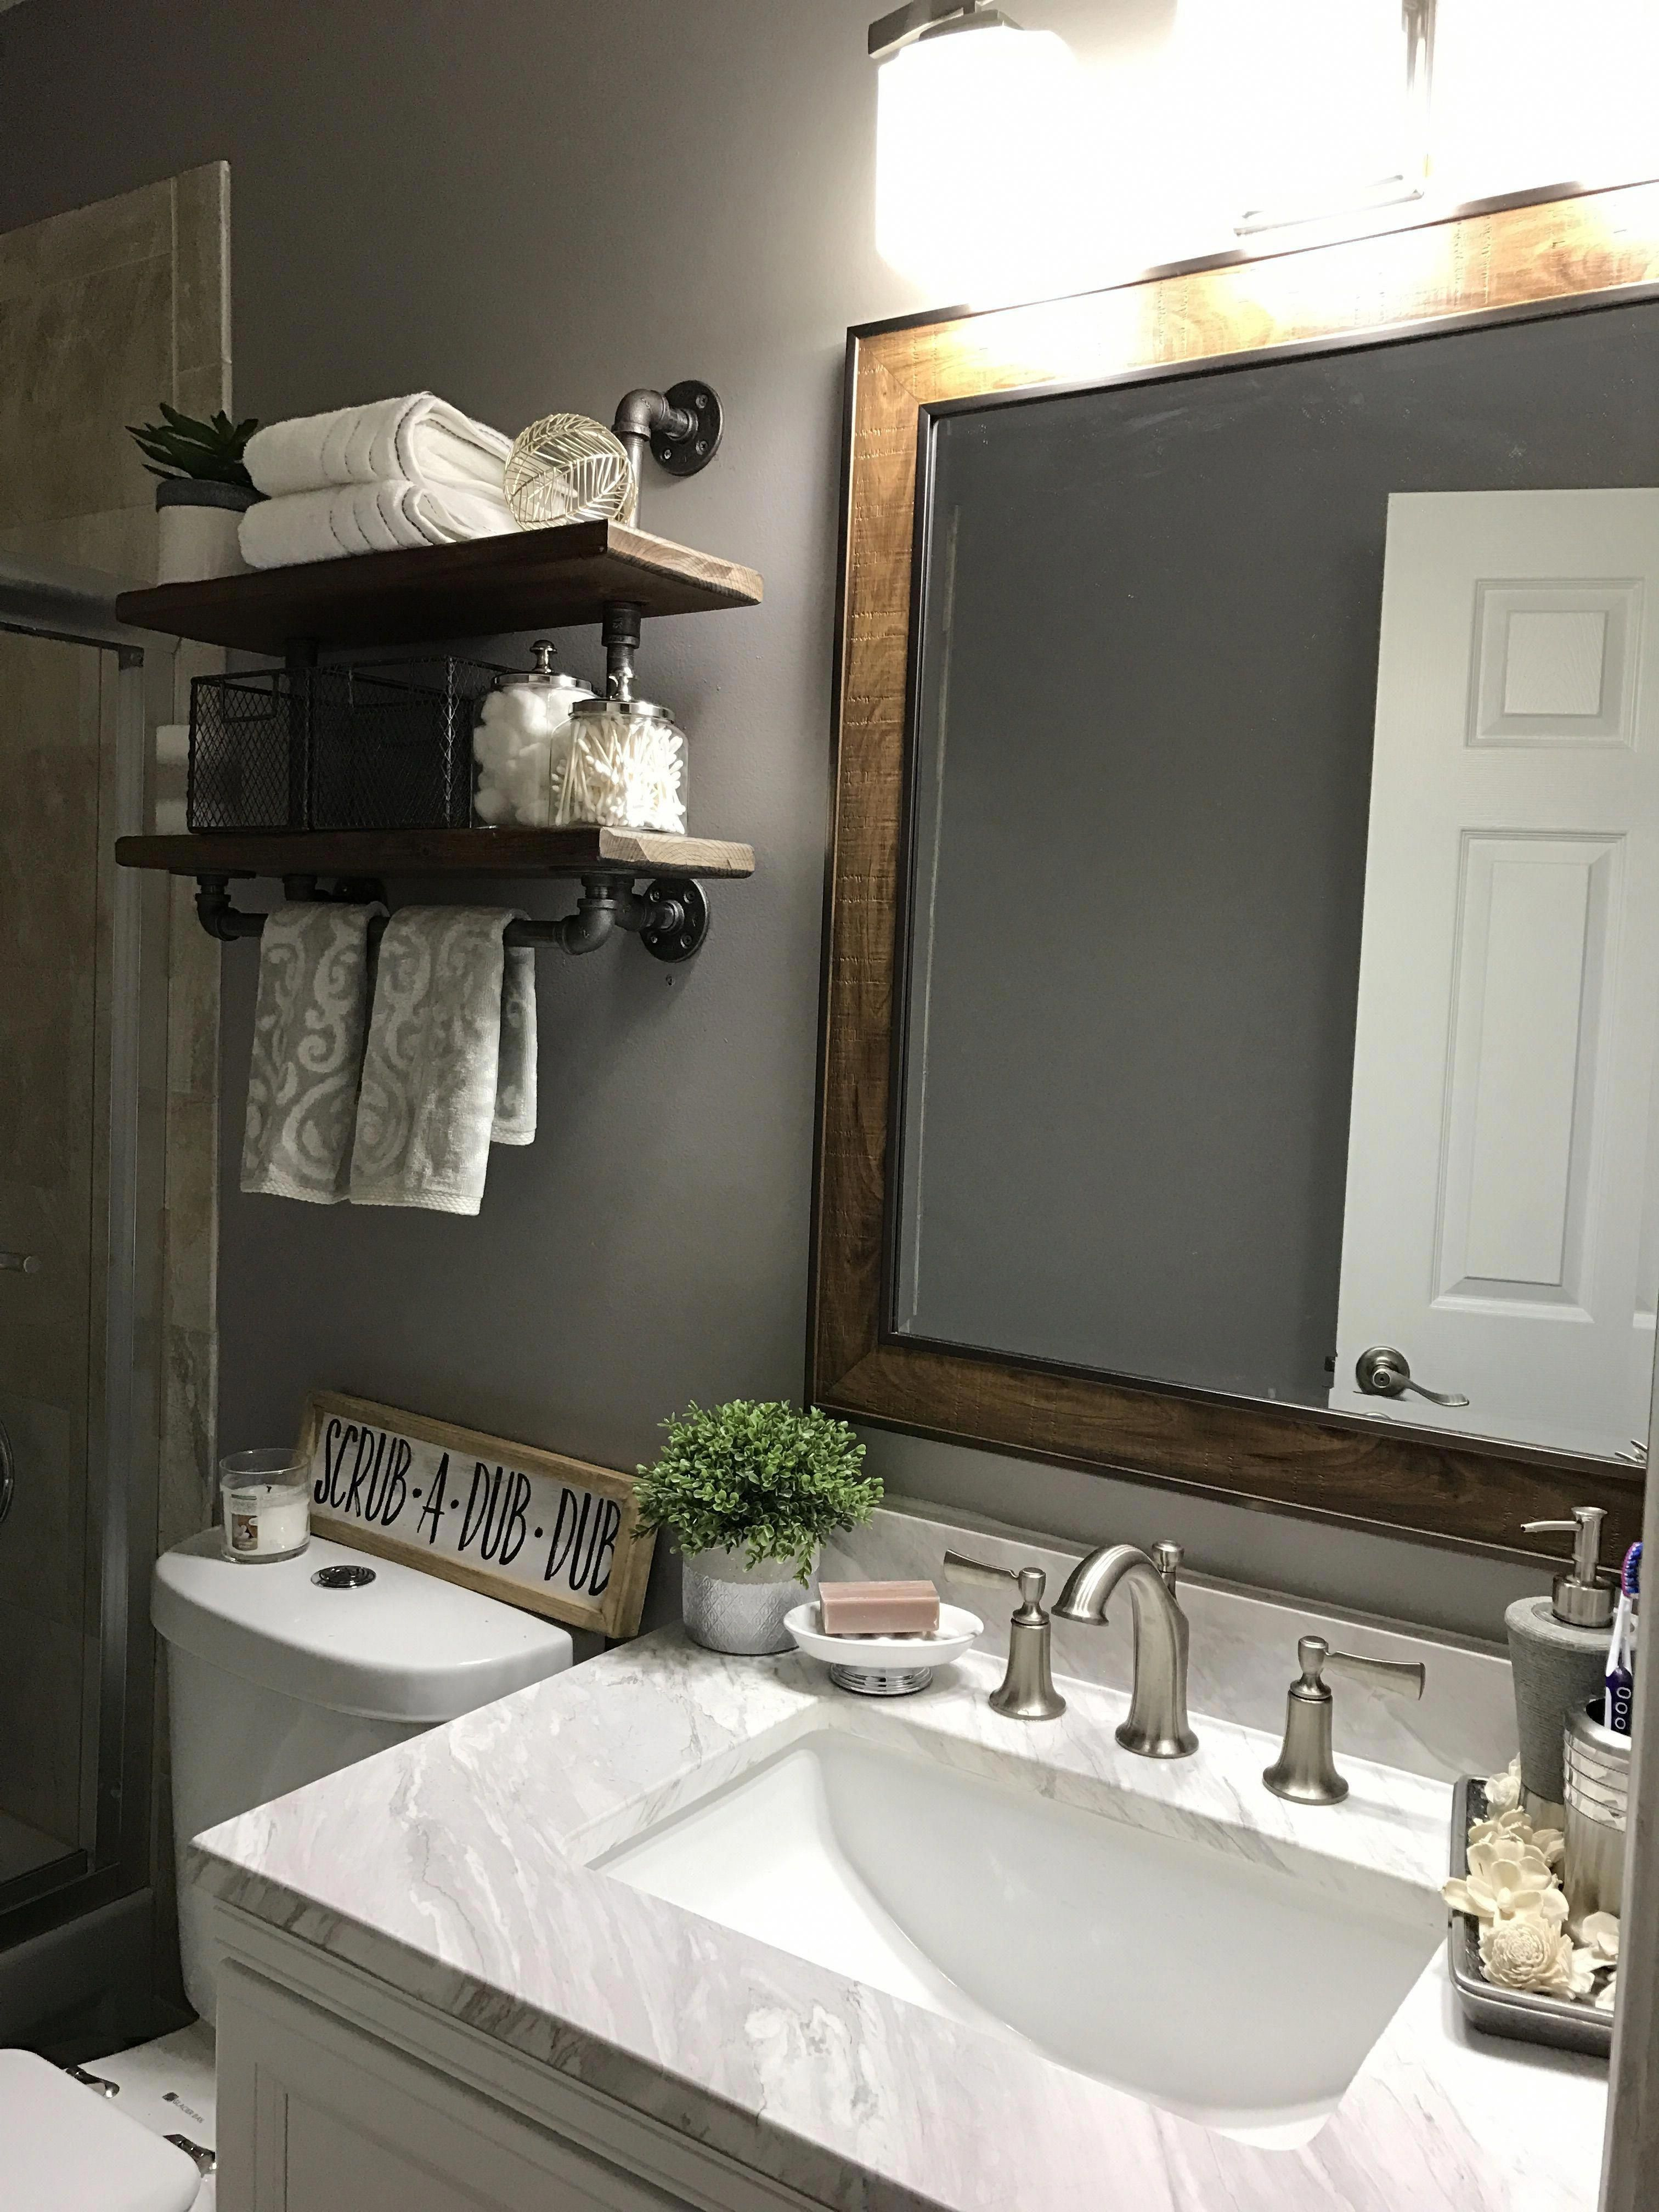 our small bathroom remodel on a budget on bathroom renovation ideas on a budget id=74164